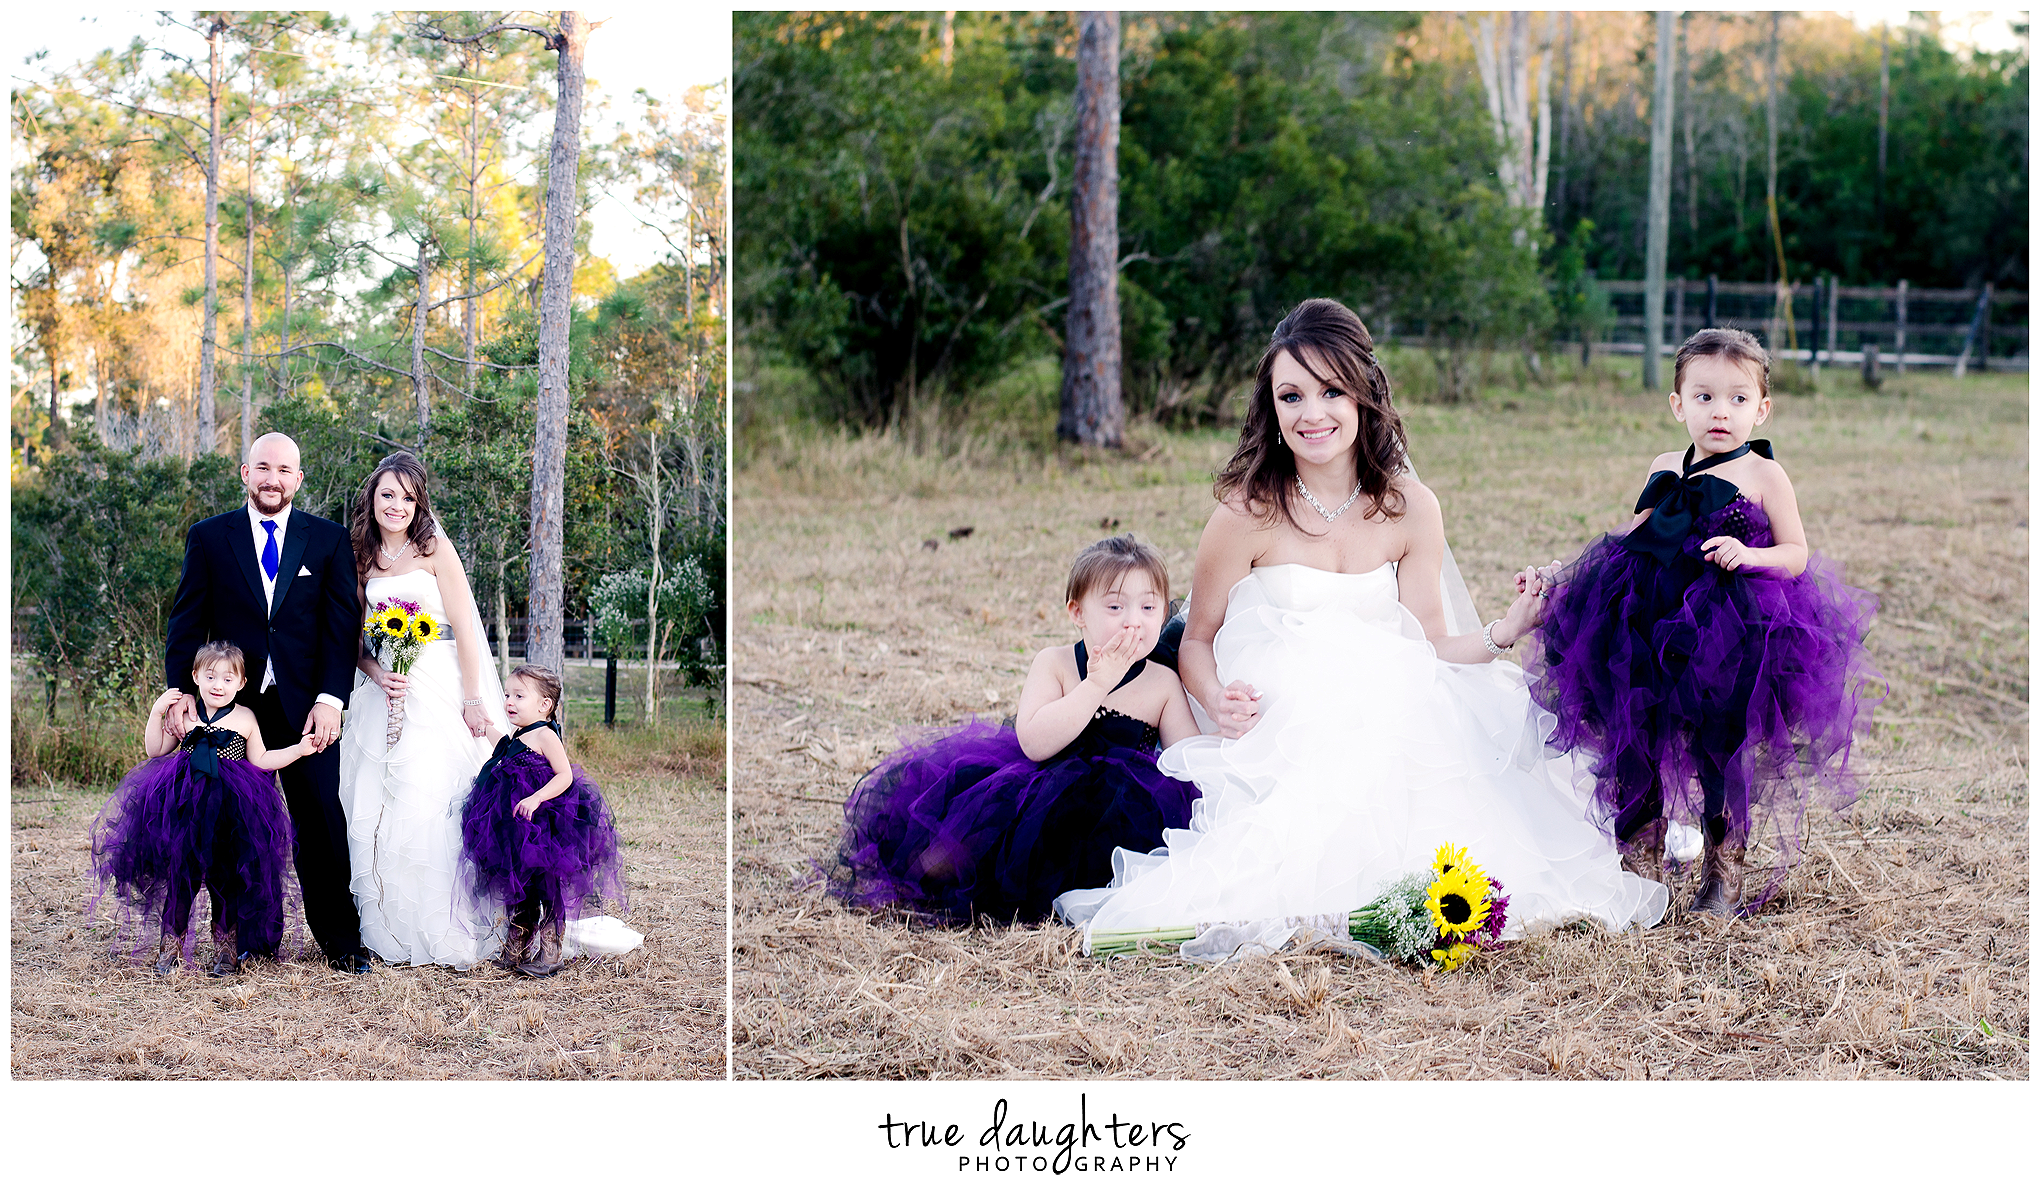 True_Daughters_Photography_Campitelli_Wedding-29.png